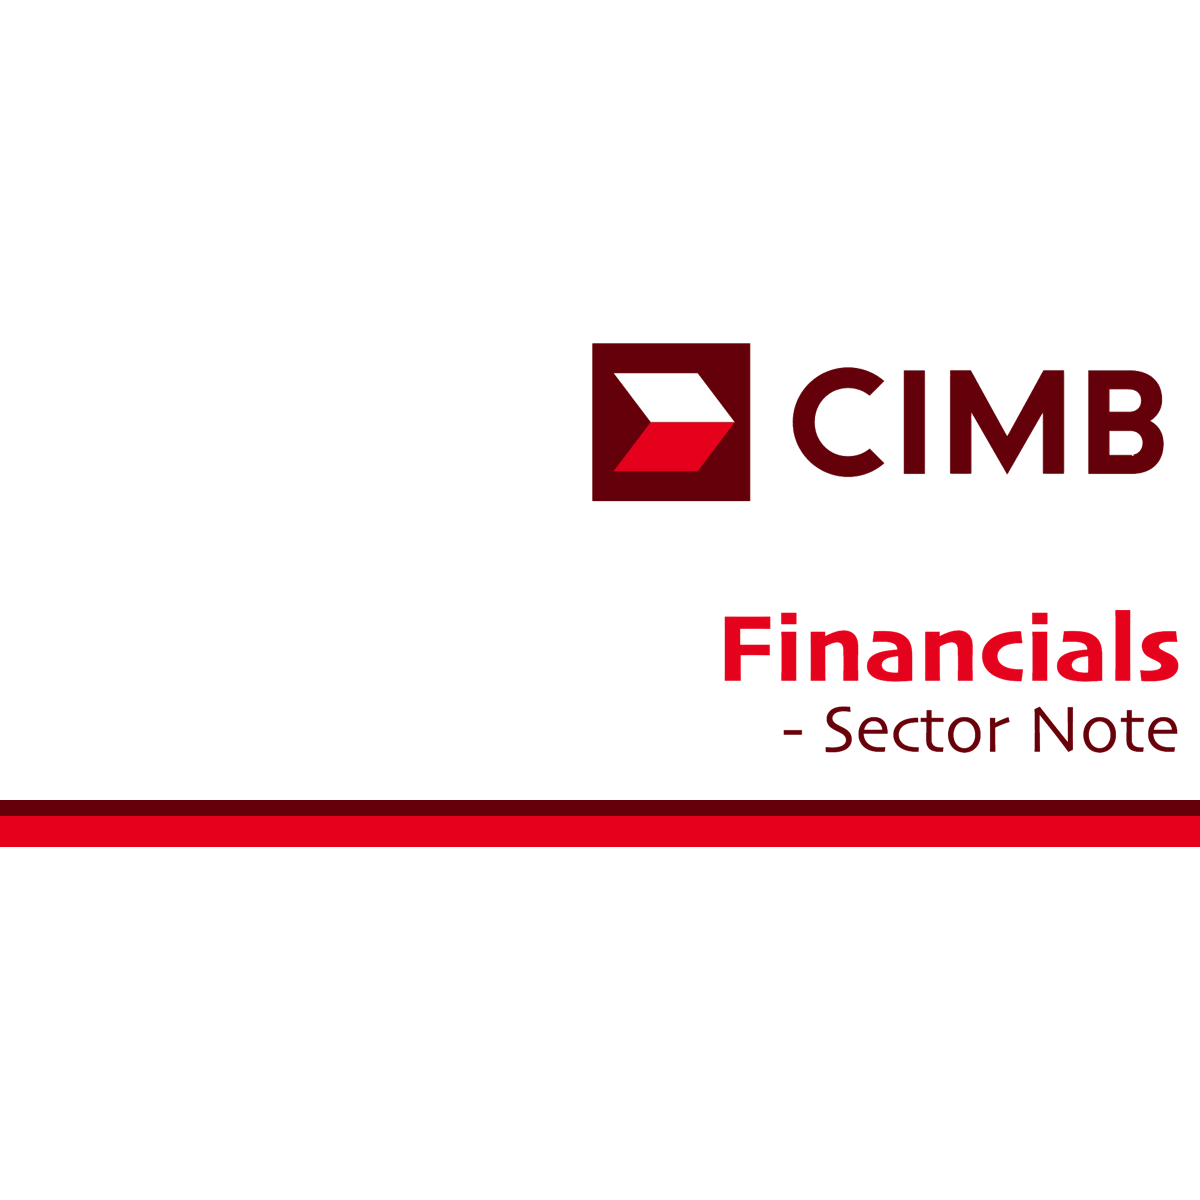 Financials Sector - CIMB Research 2017-05-30: Neutral From Underweight